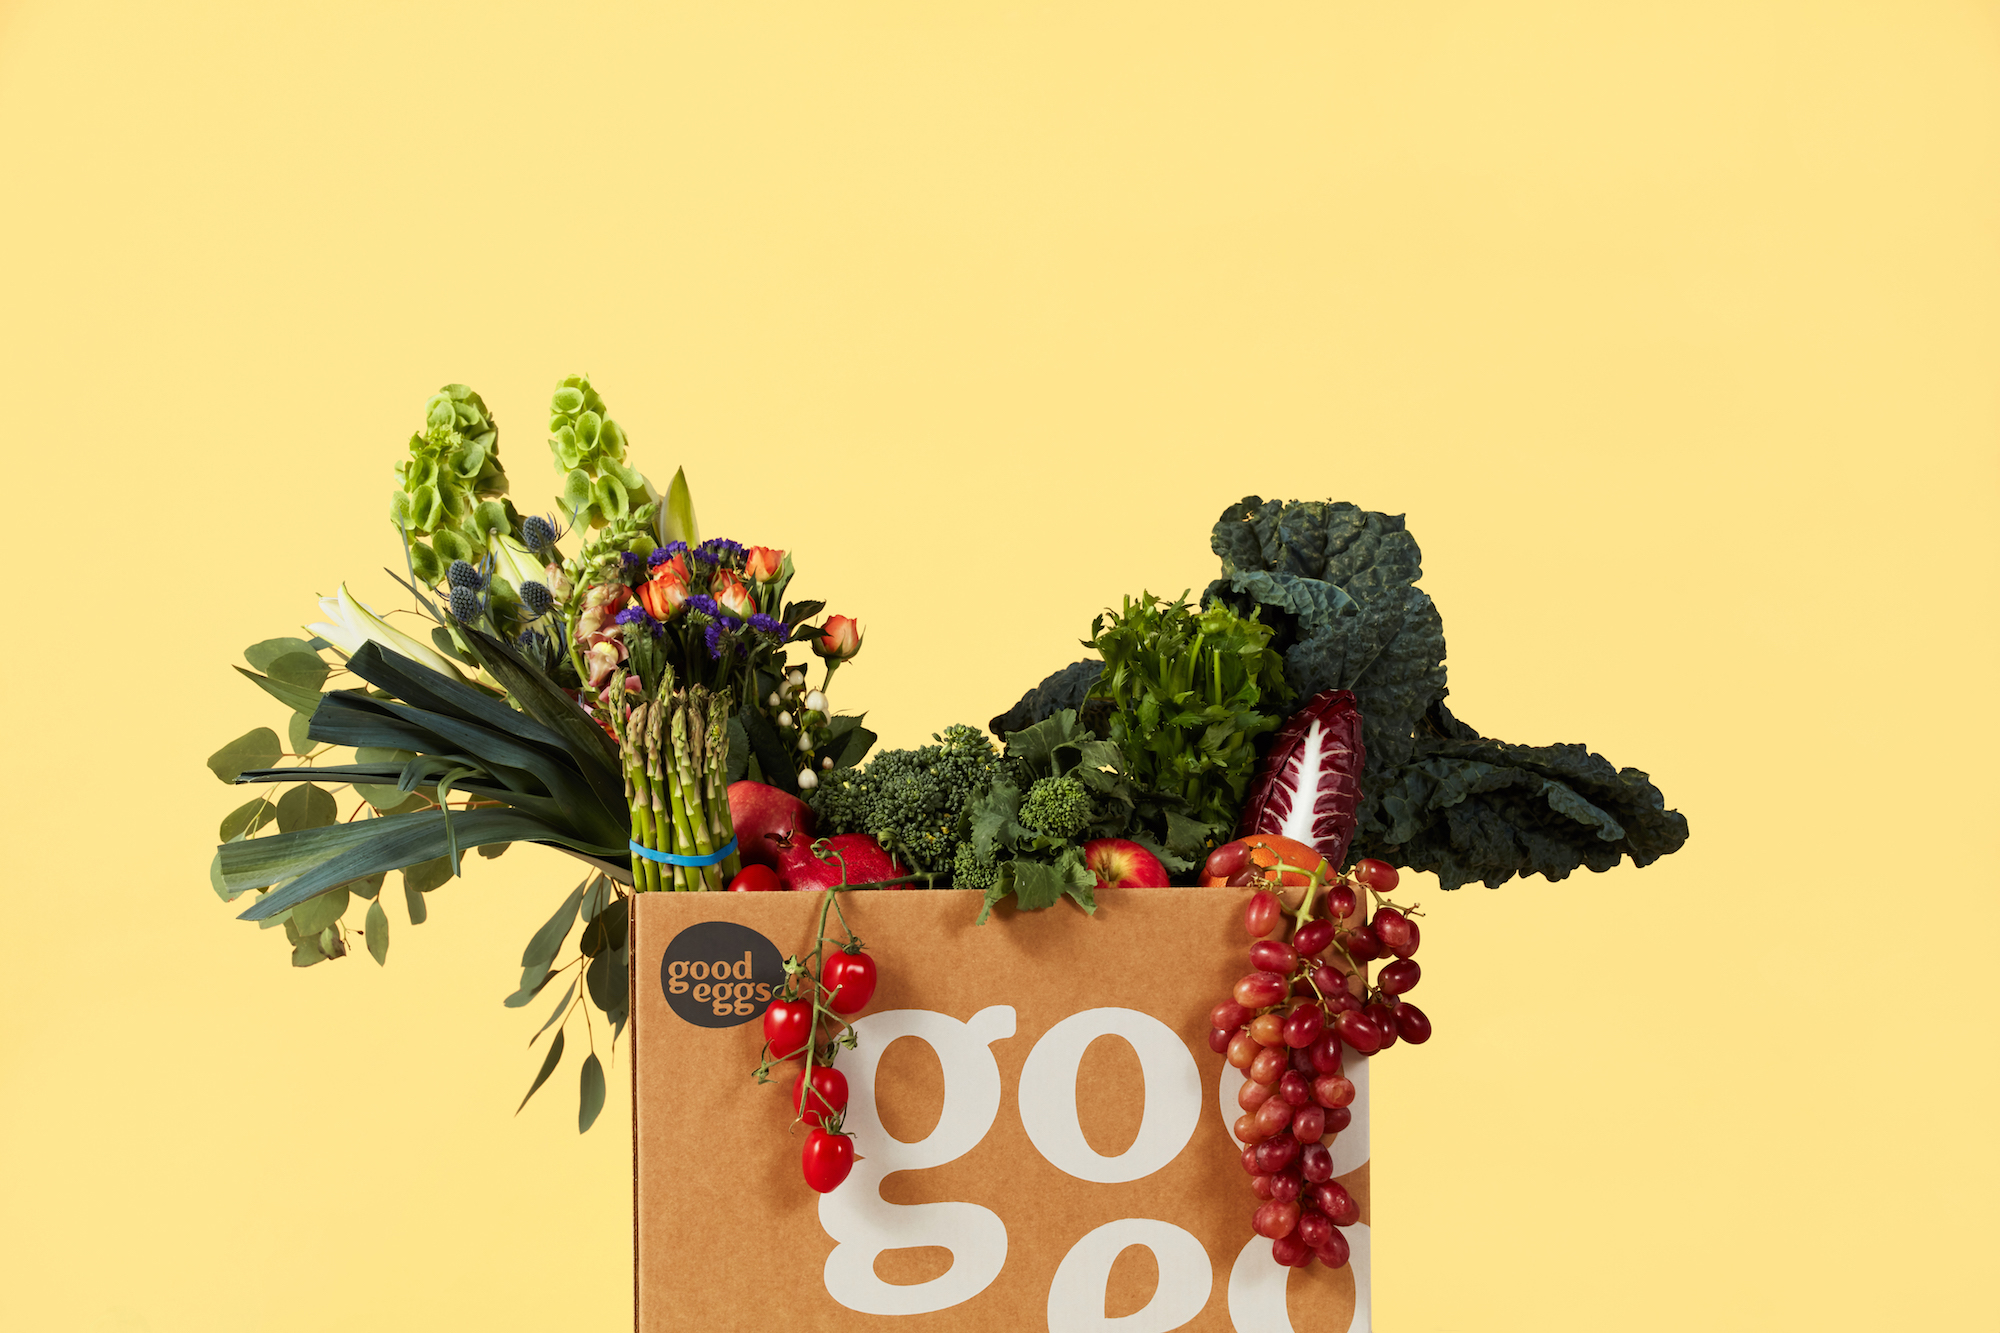 GOOD EGGS - PHOTOGRAPHY: LANCE SKUNDRICHCREATIVE DIRECTION: BUTCHERSHOP CREATIVEART DIRECTION: BUHO DESIGN + CO.PROP STYLING: BUHO DESIGN + CO.